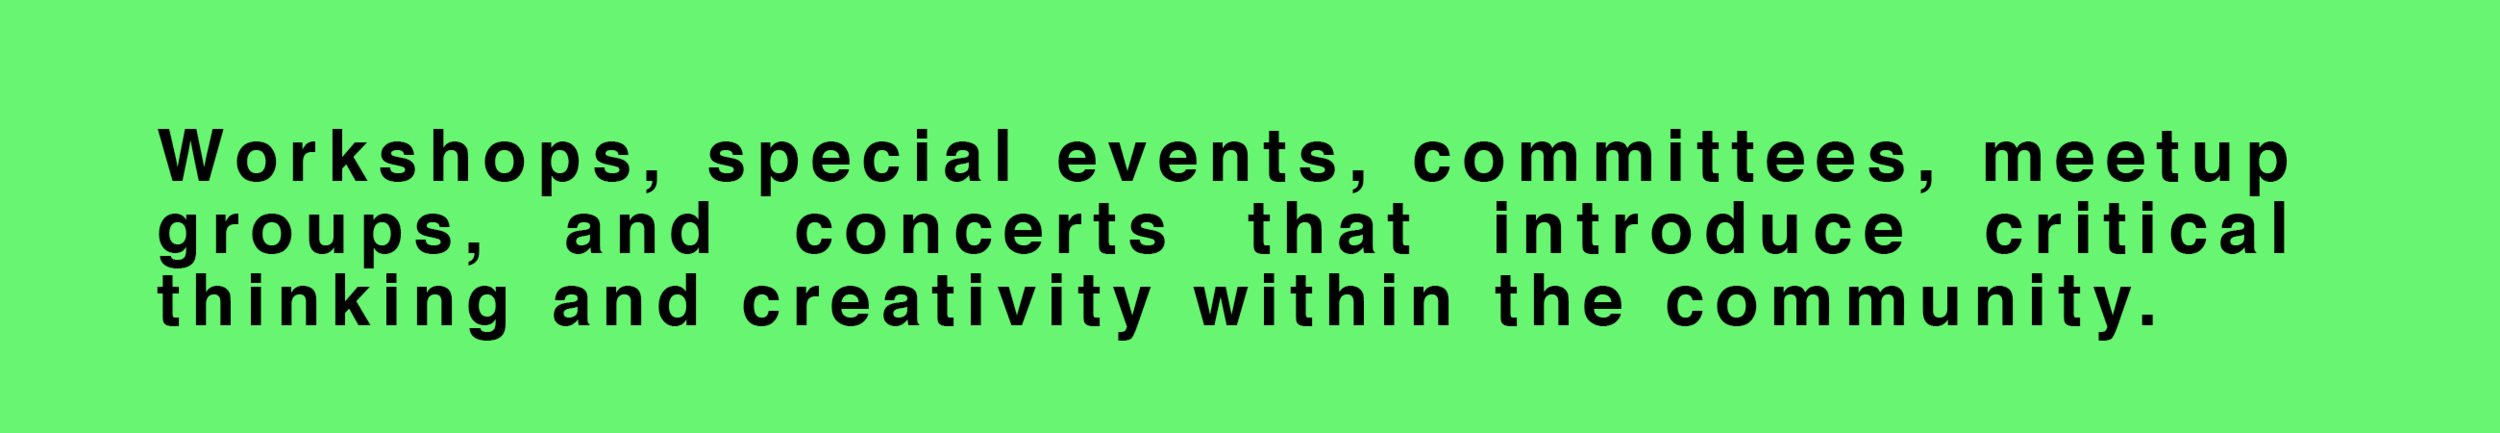 events(words).png